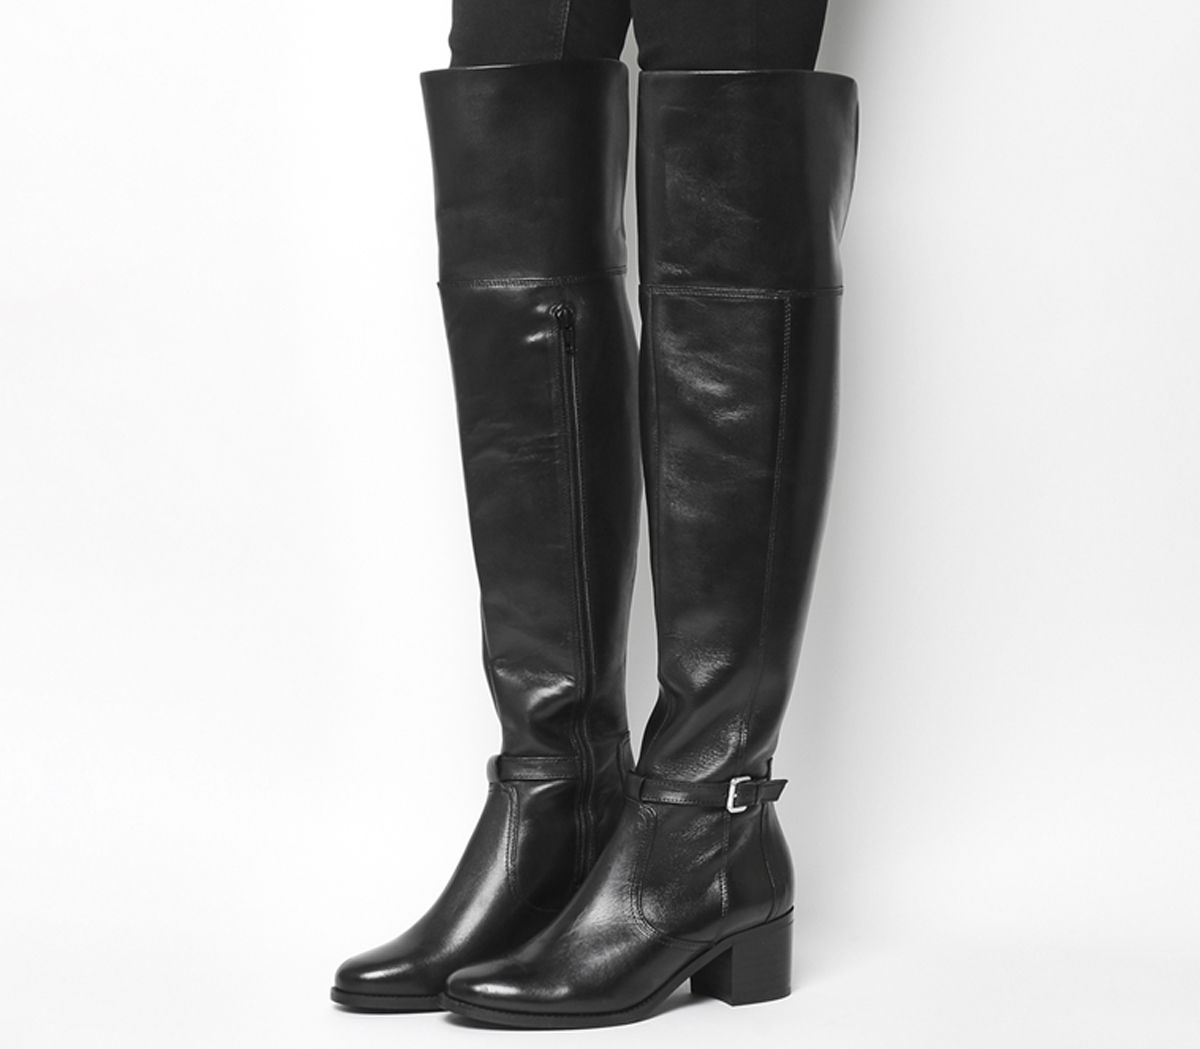 8c0e4b180baf Office Kacey Over The Knee Riding Boots Black Leather - Knee Boots